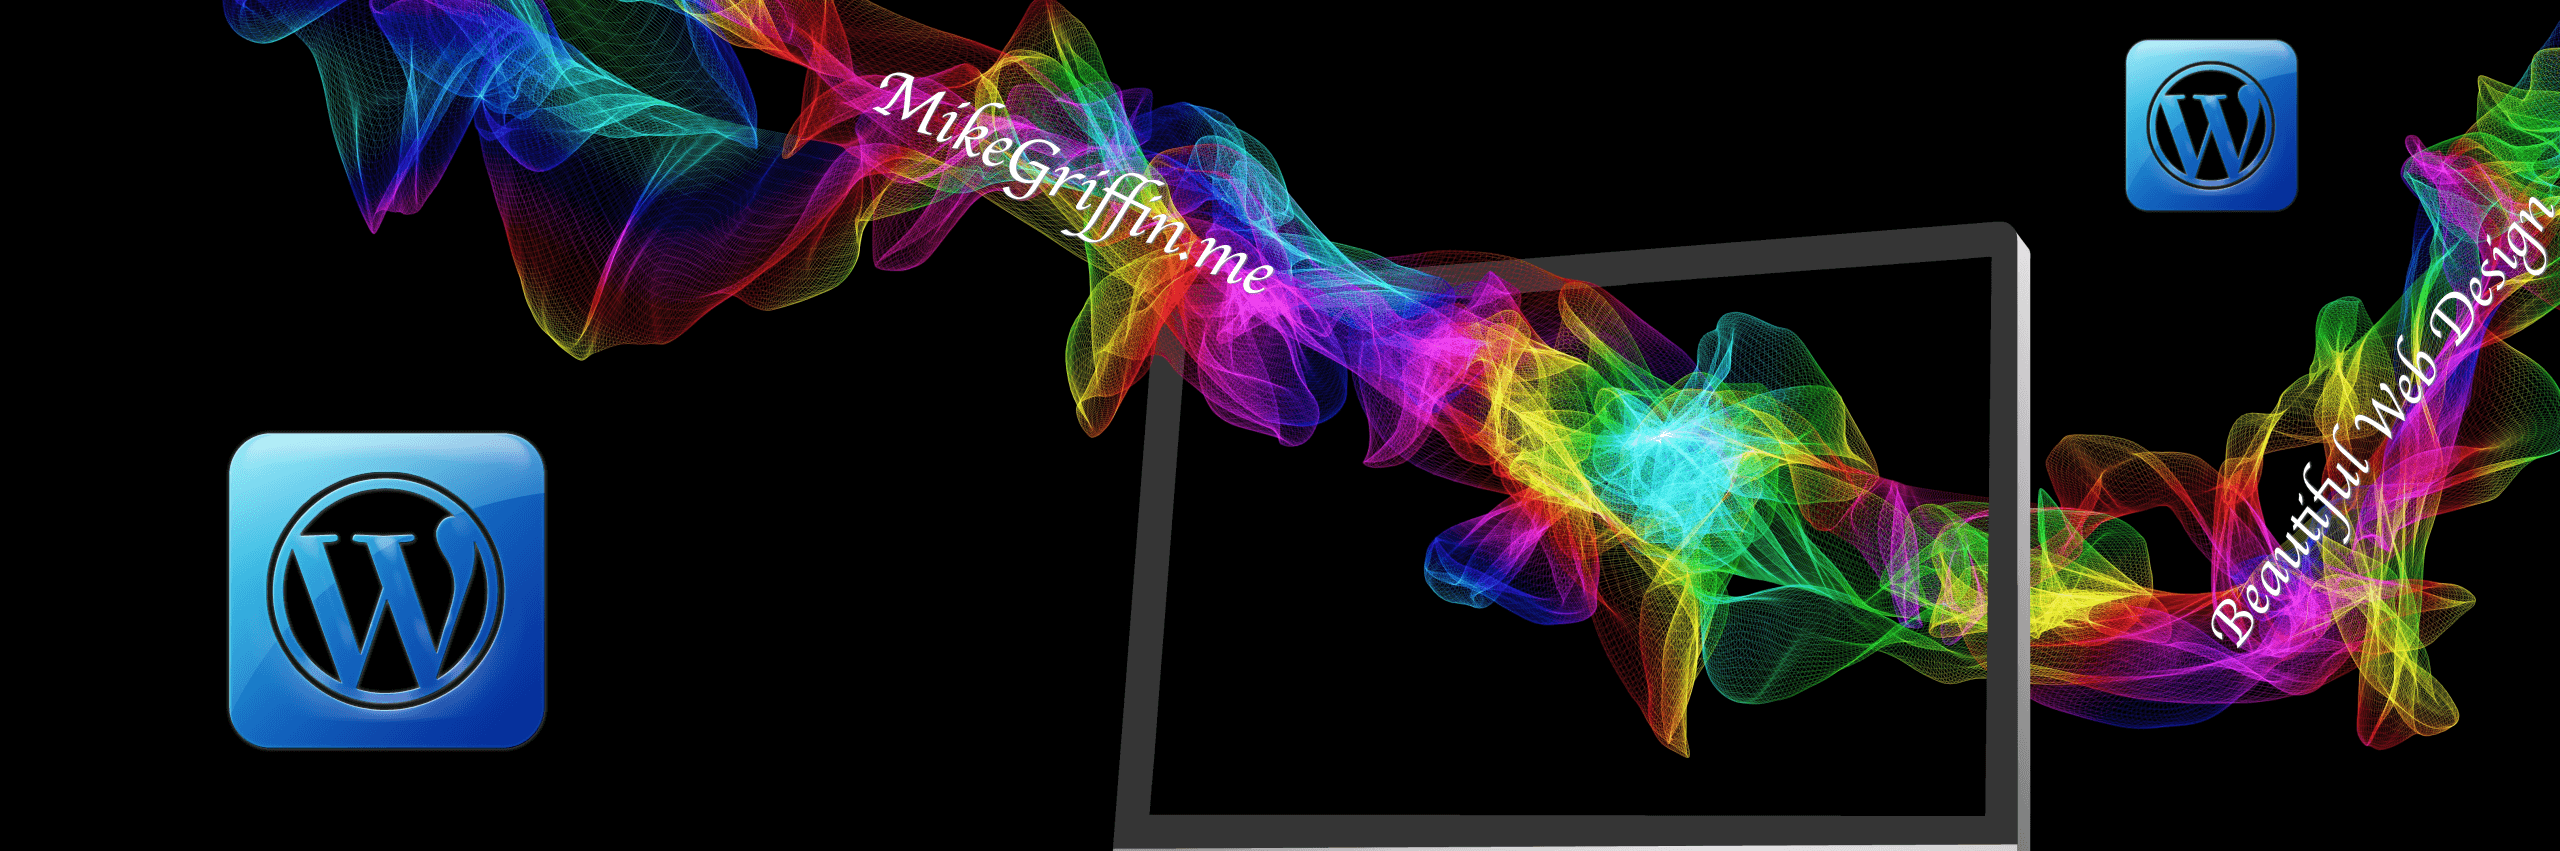 MikeGriffin.me WordPress Particle Banner